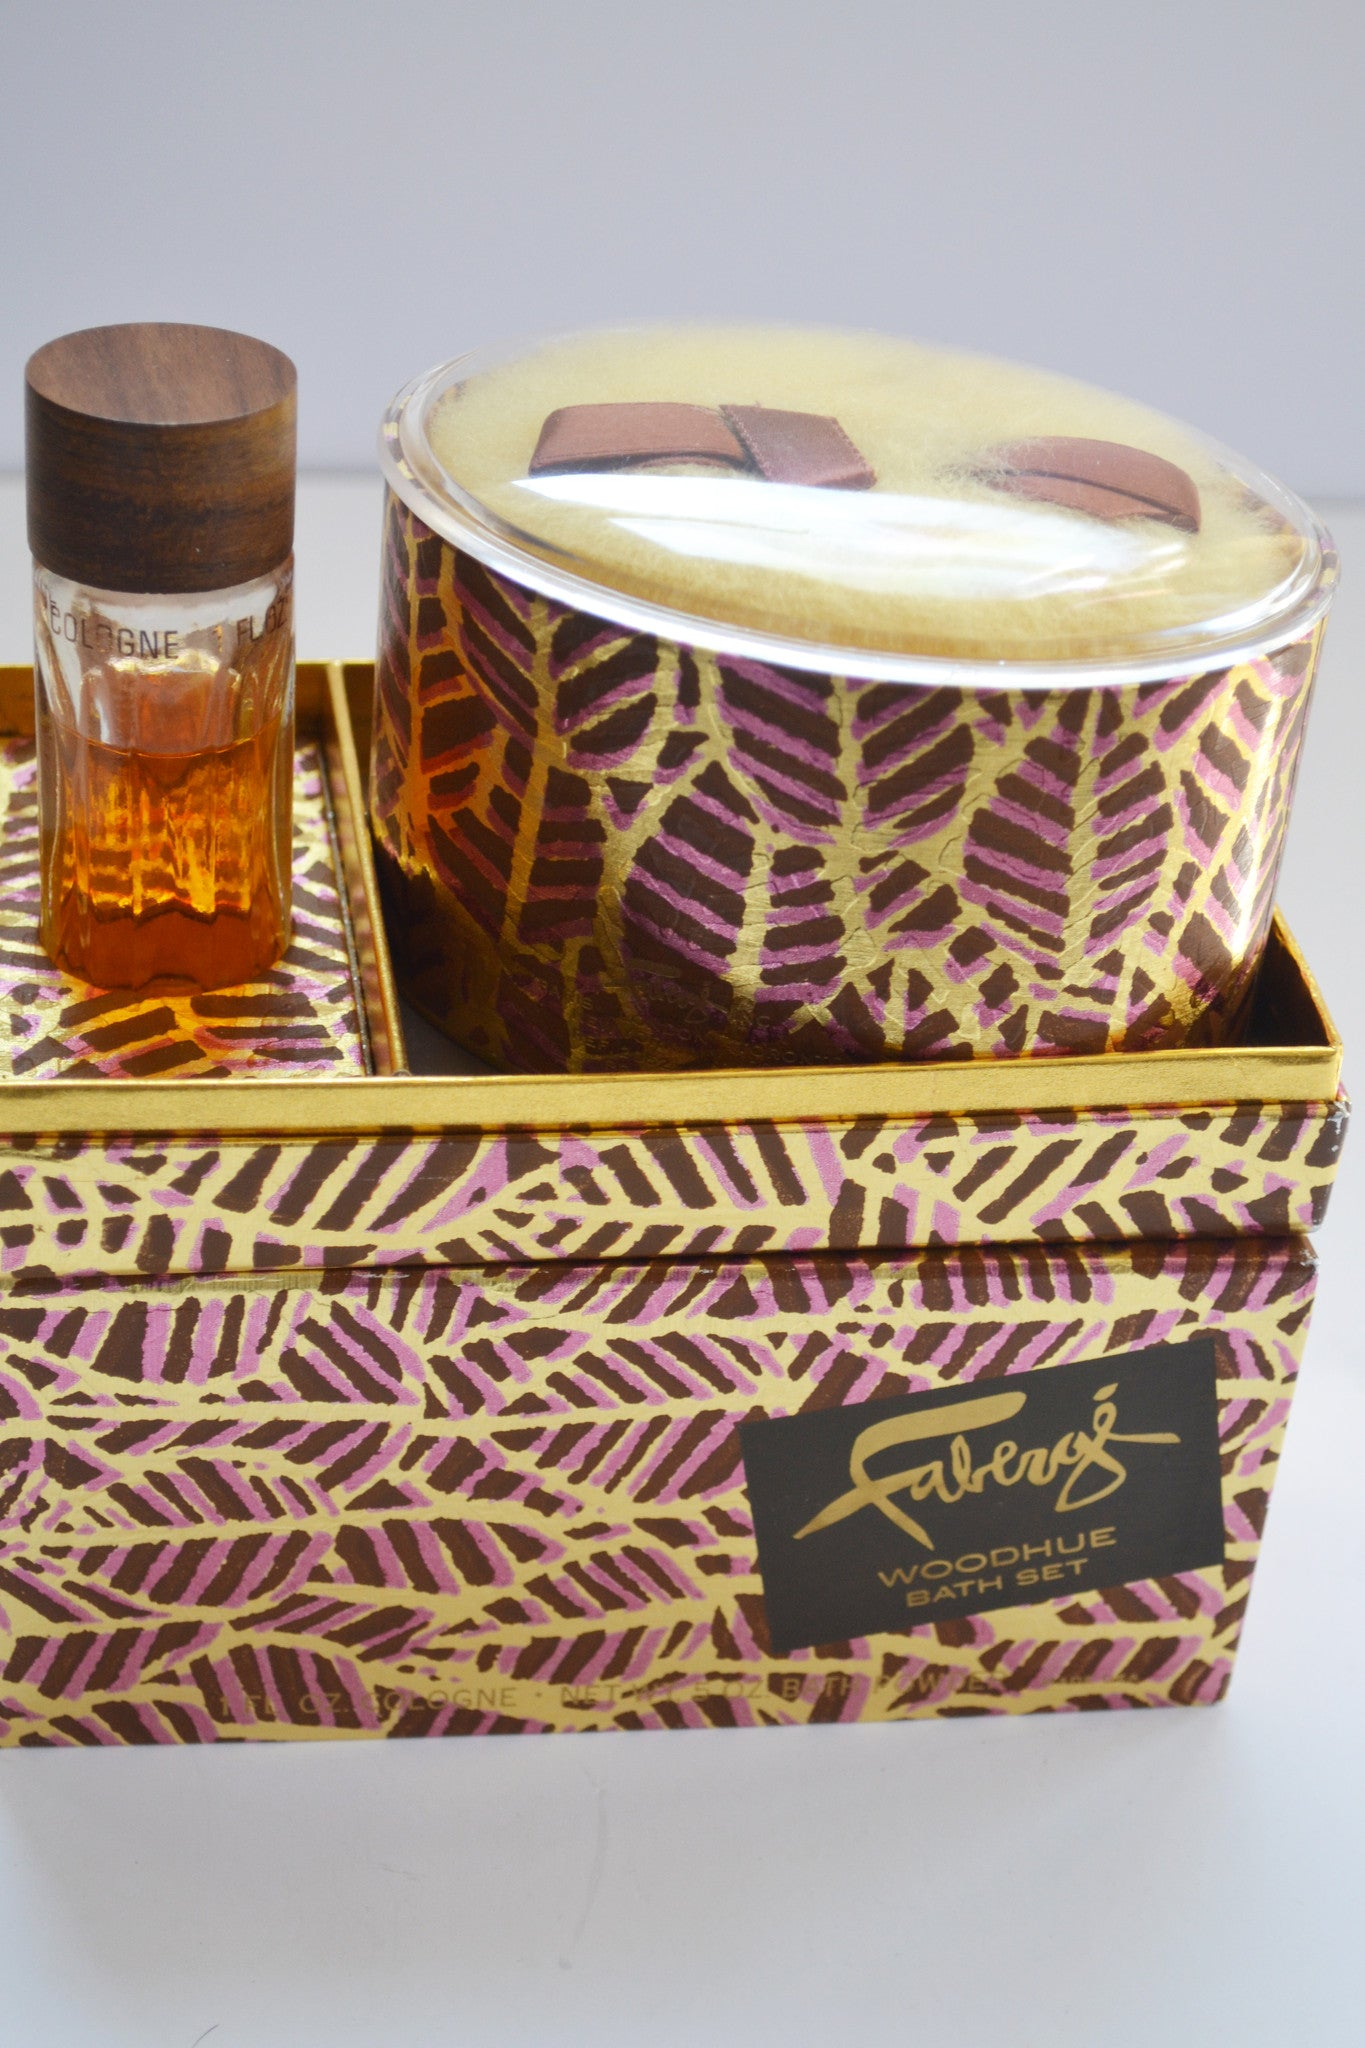 Faberge Woodhue Bath Set